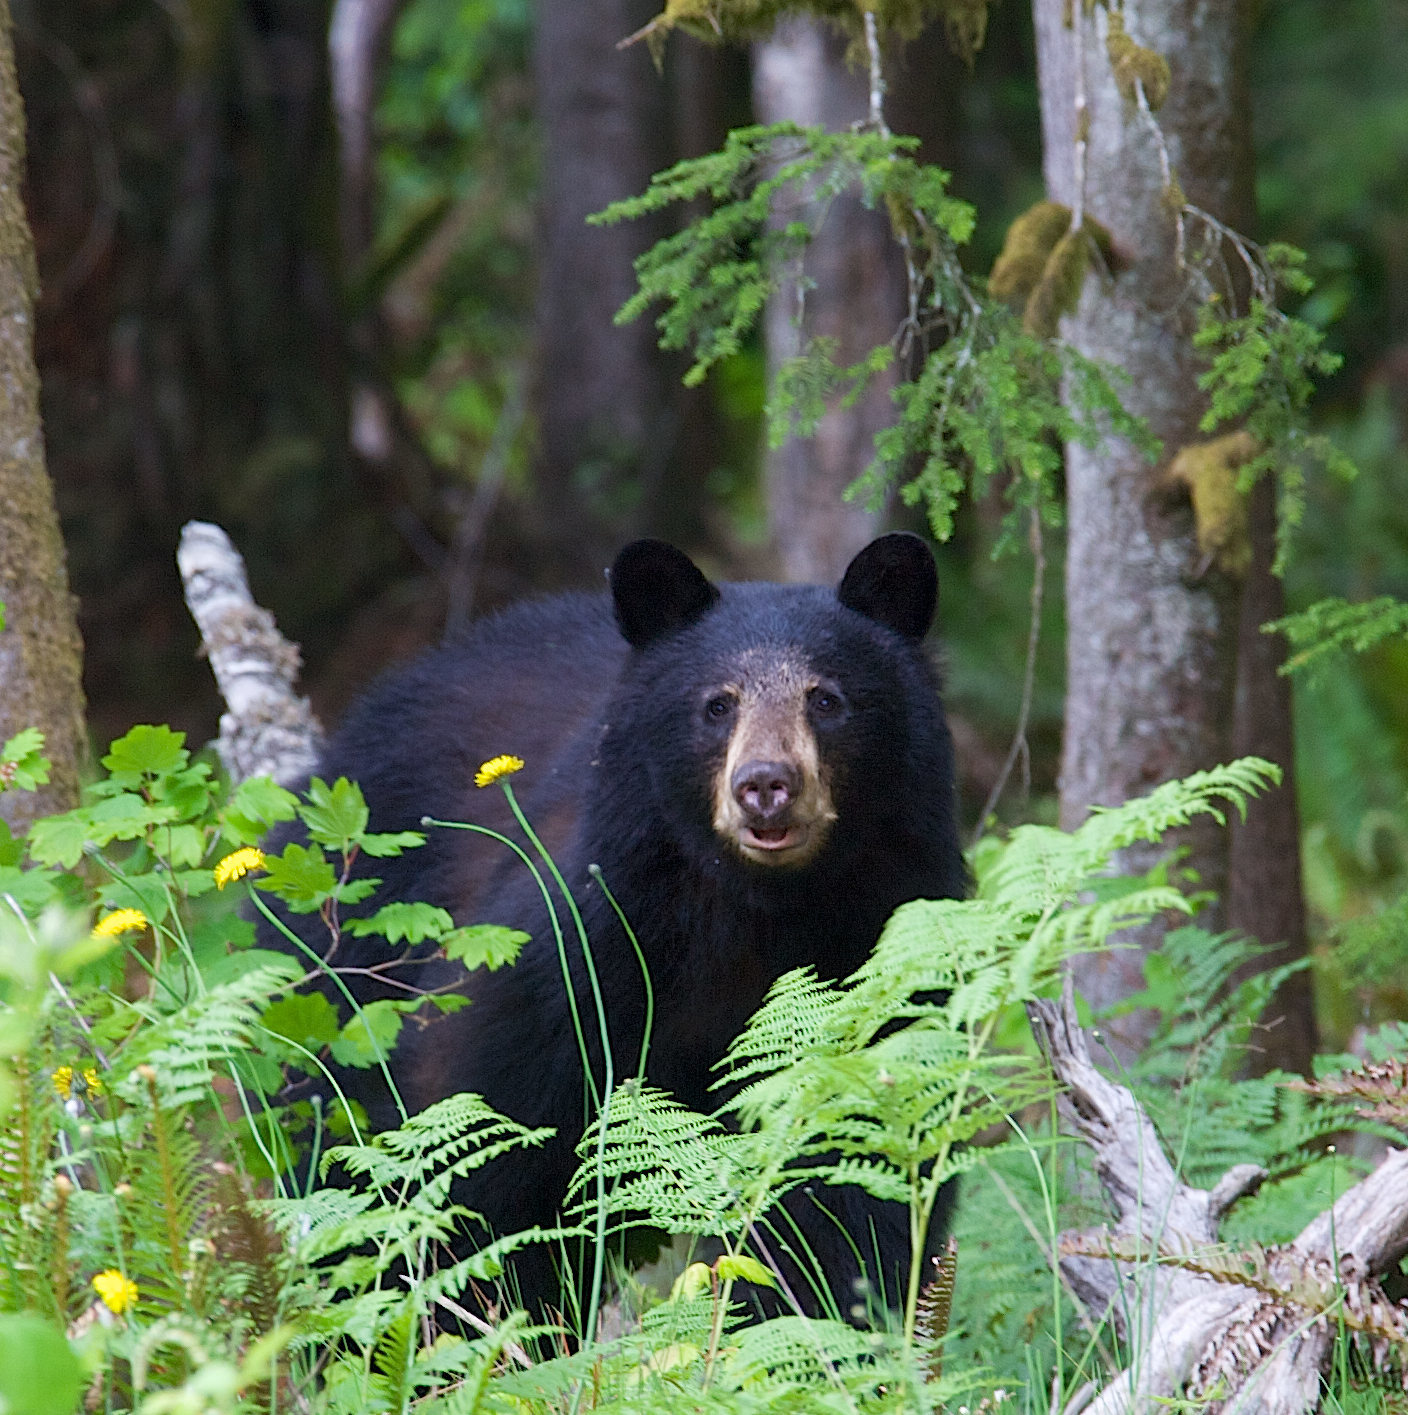 Black bear in a forest in British Columbia Canada